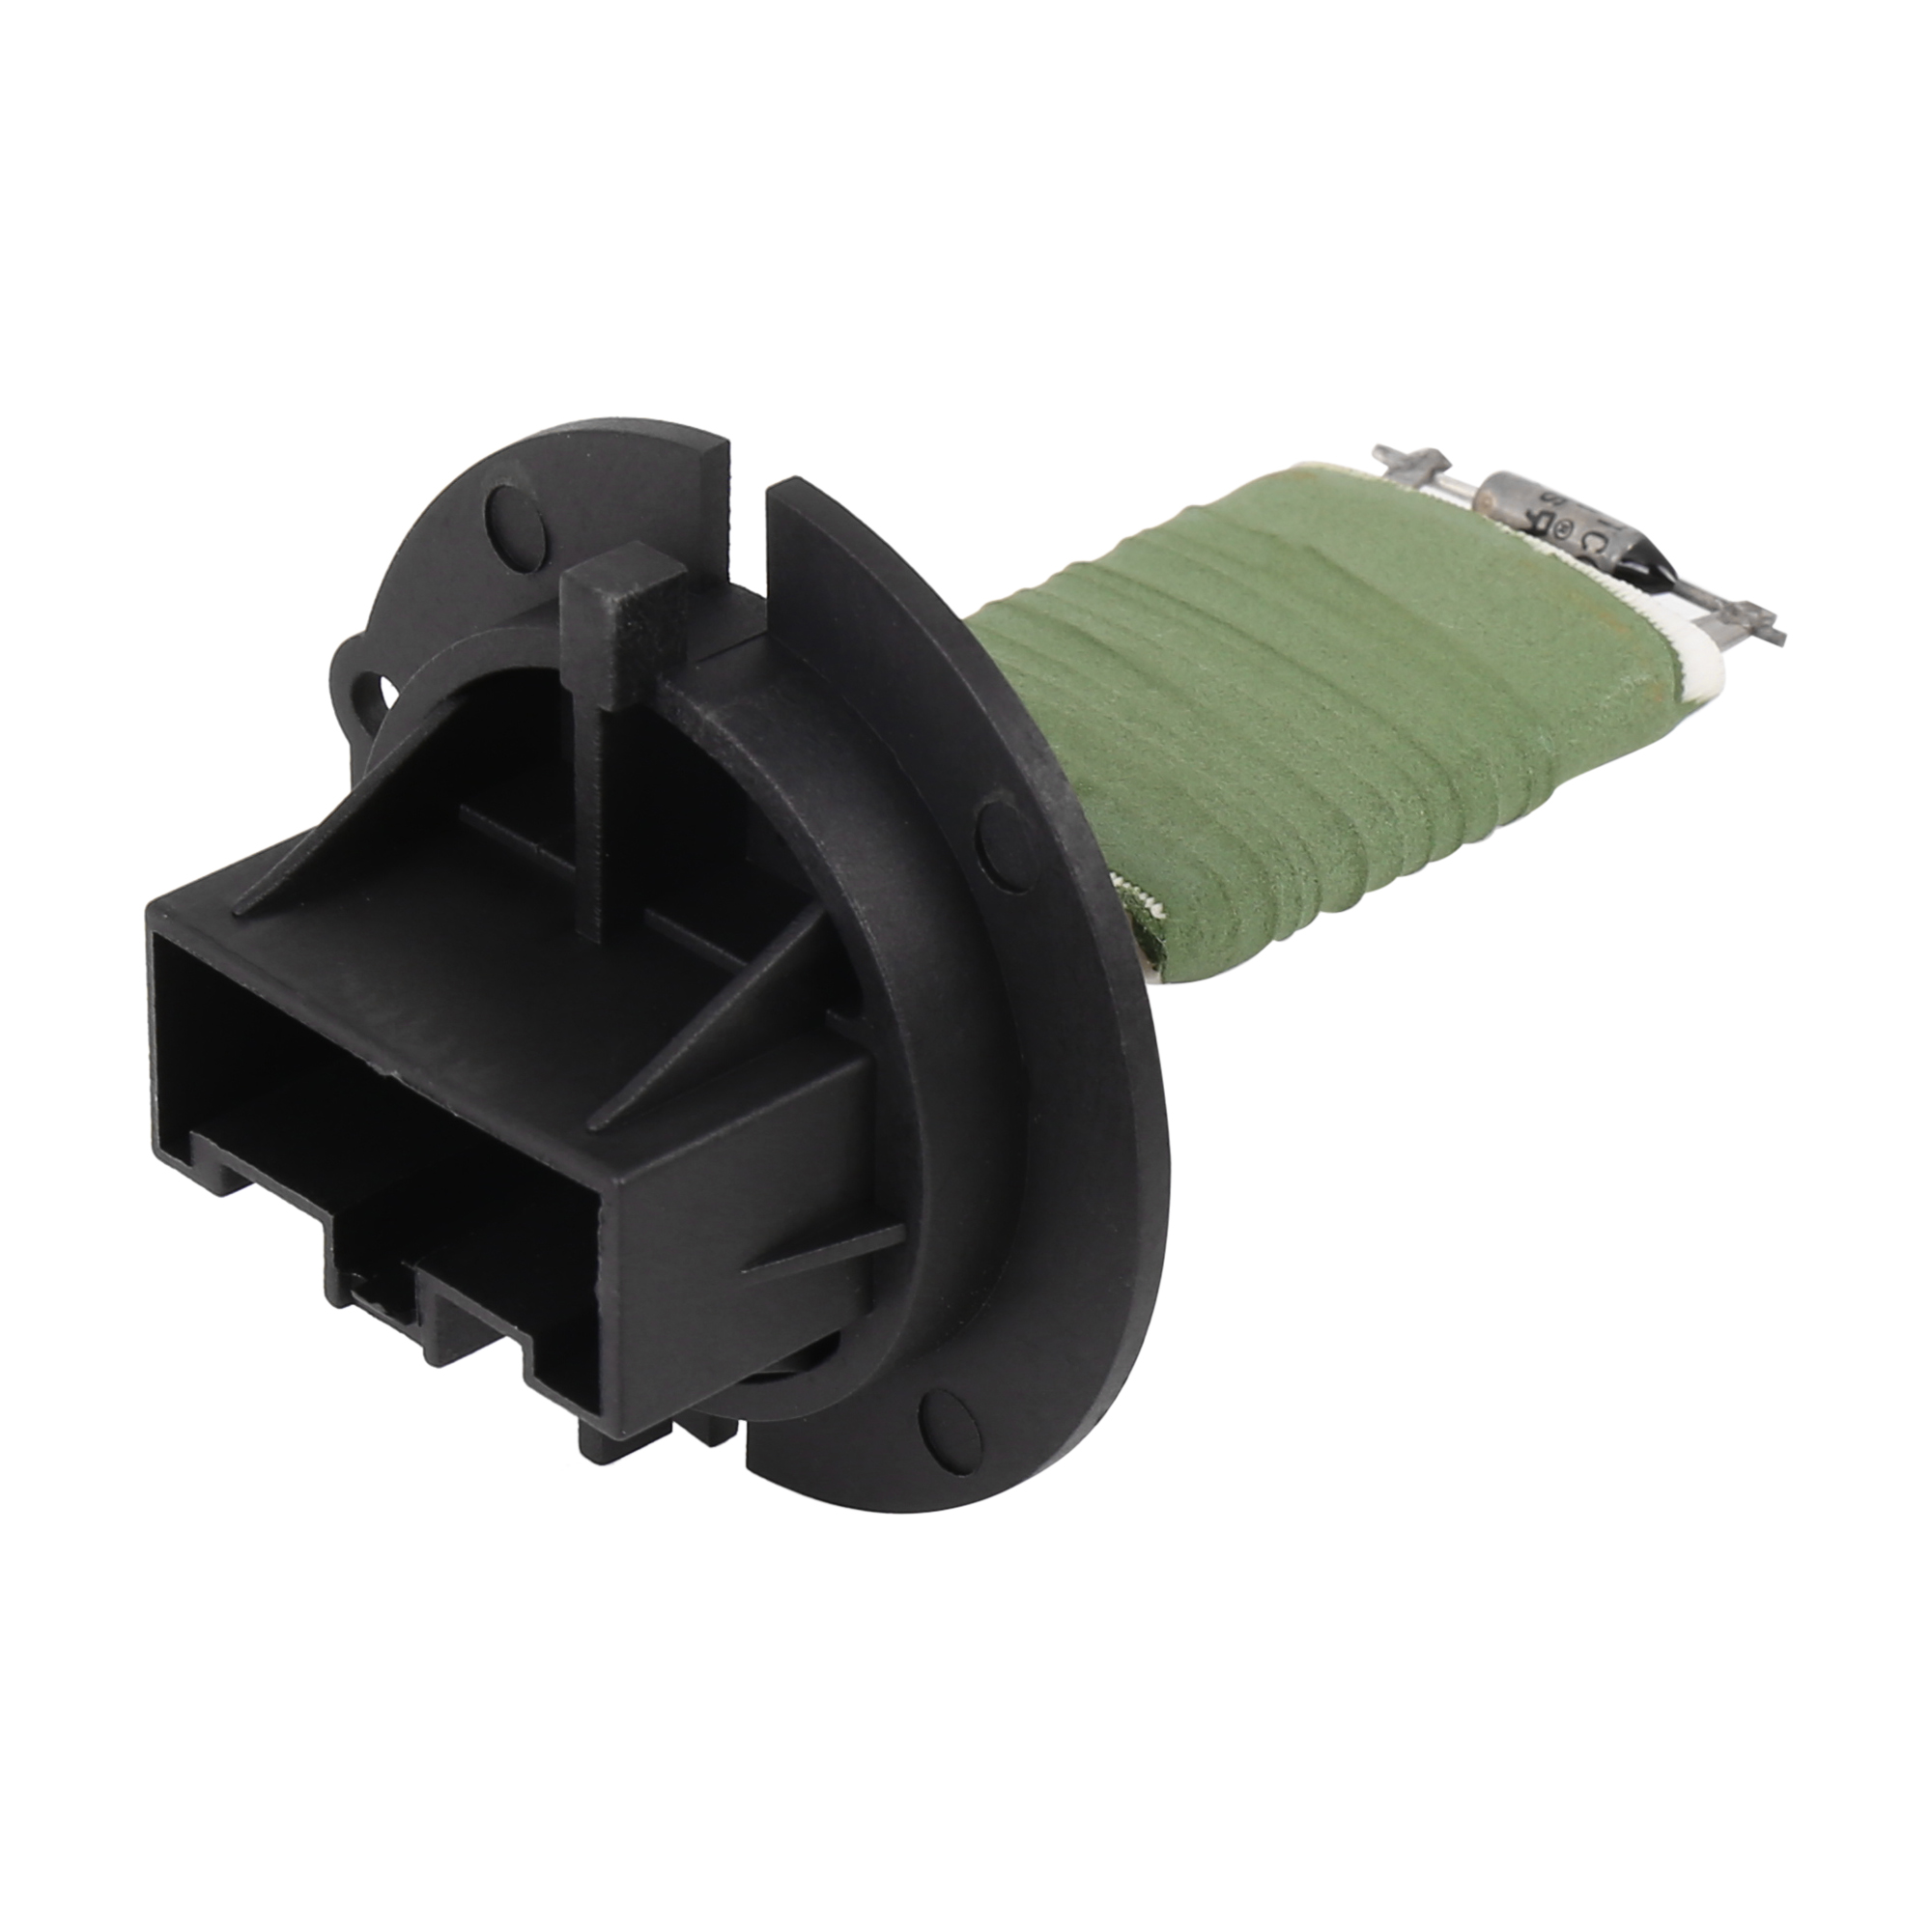 Heater Blower Resistor High-end 77362439 Heater Blower Resistor Sturdy Durable for Peugeot Boxer Car Repair Car Replacement Parts Citroen Relay